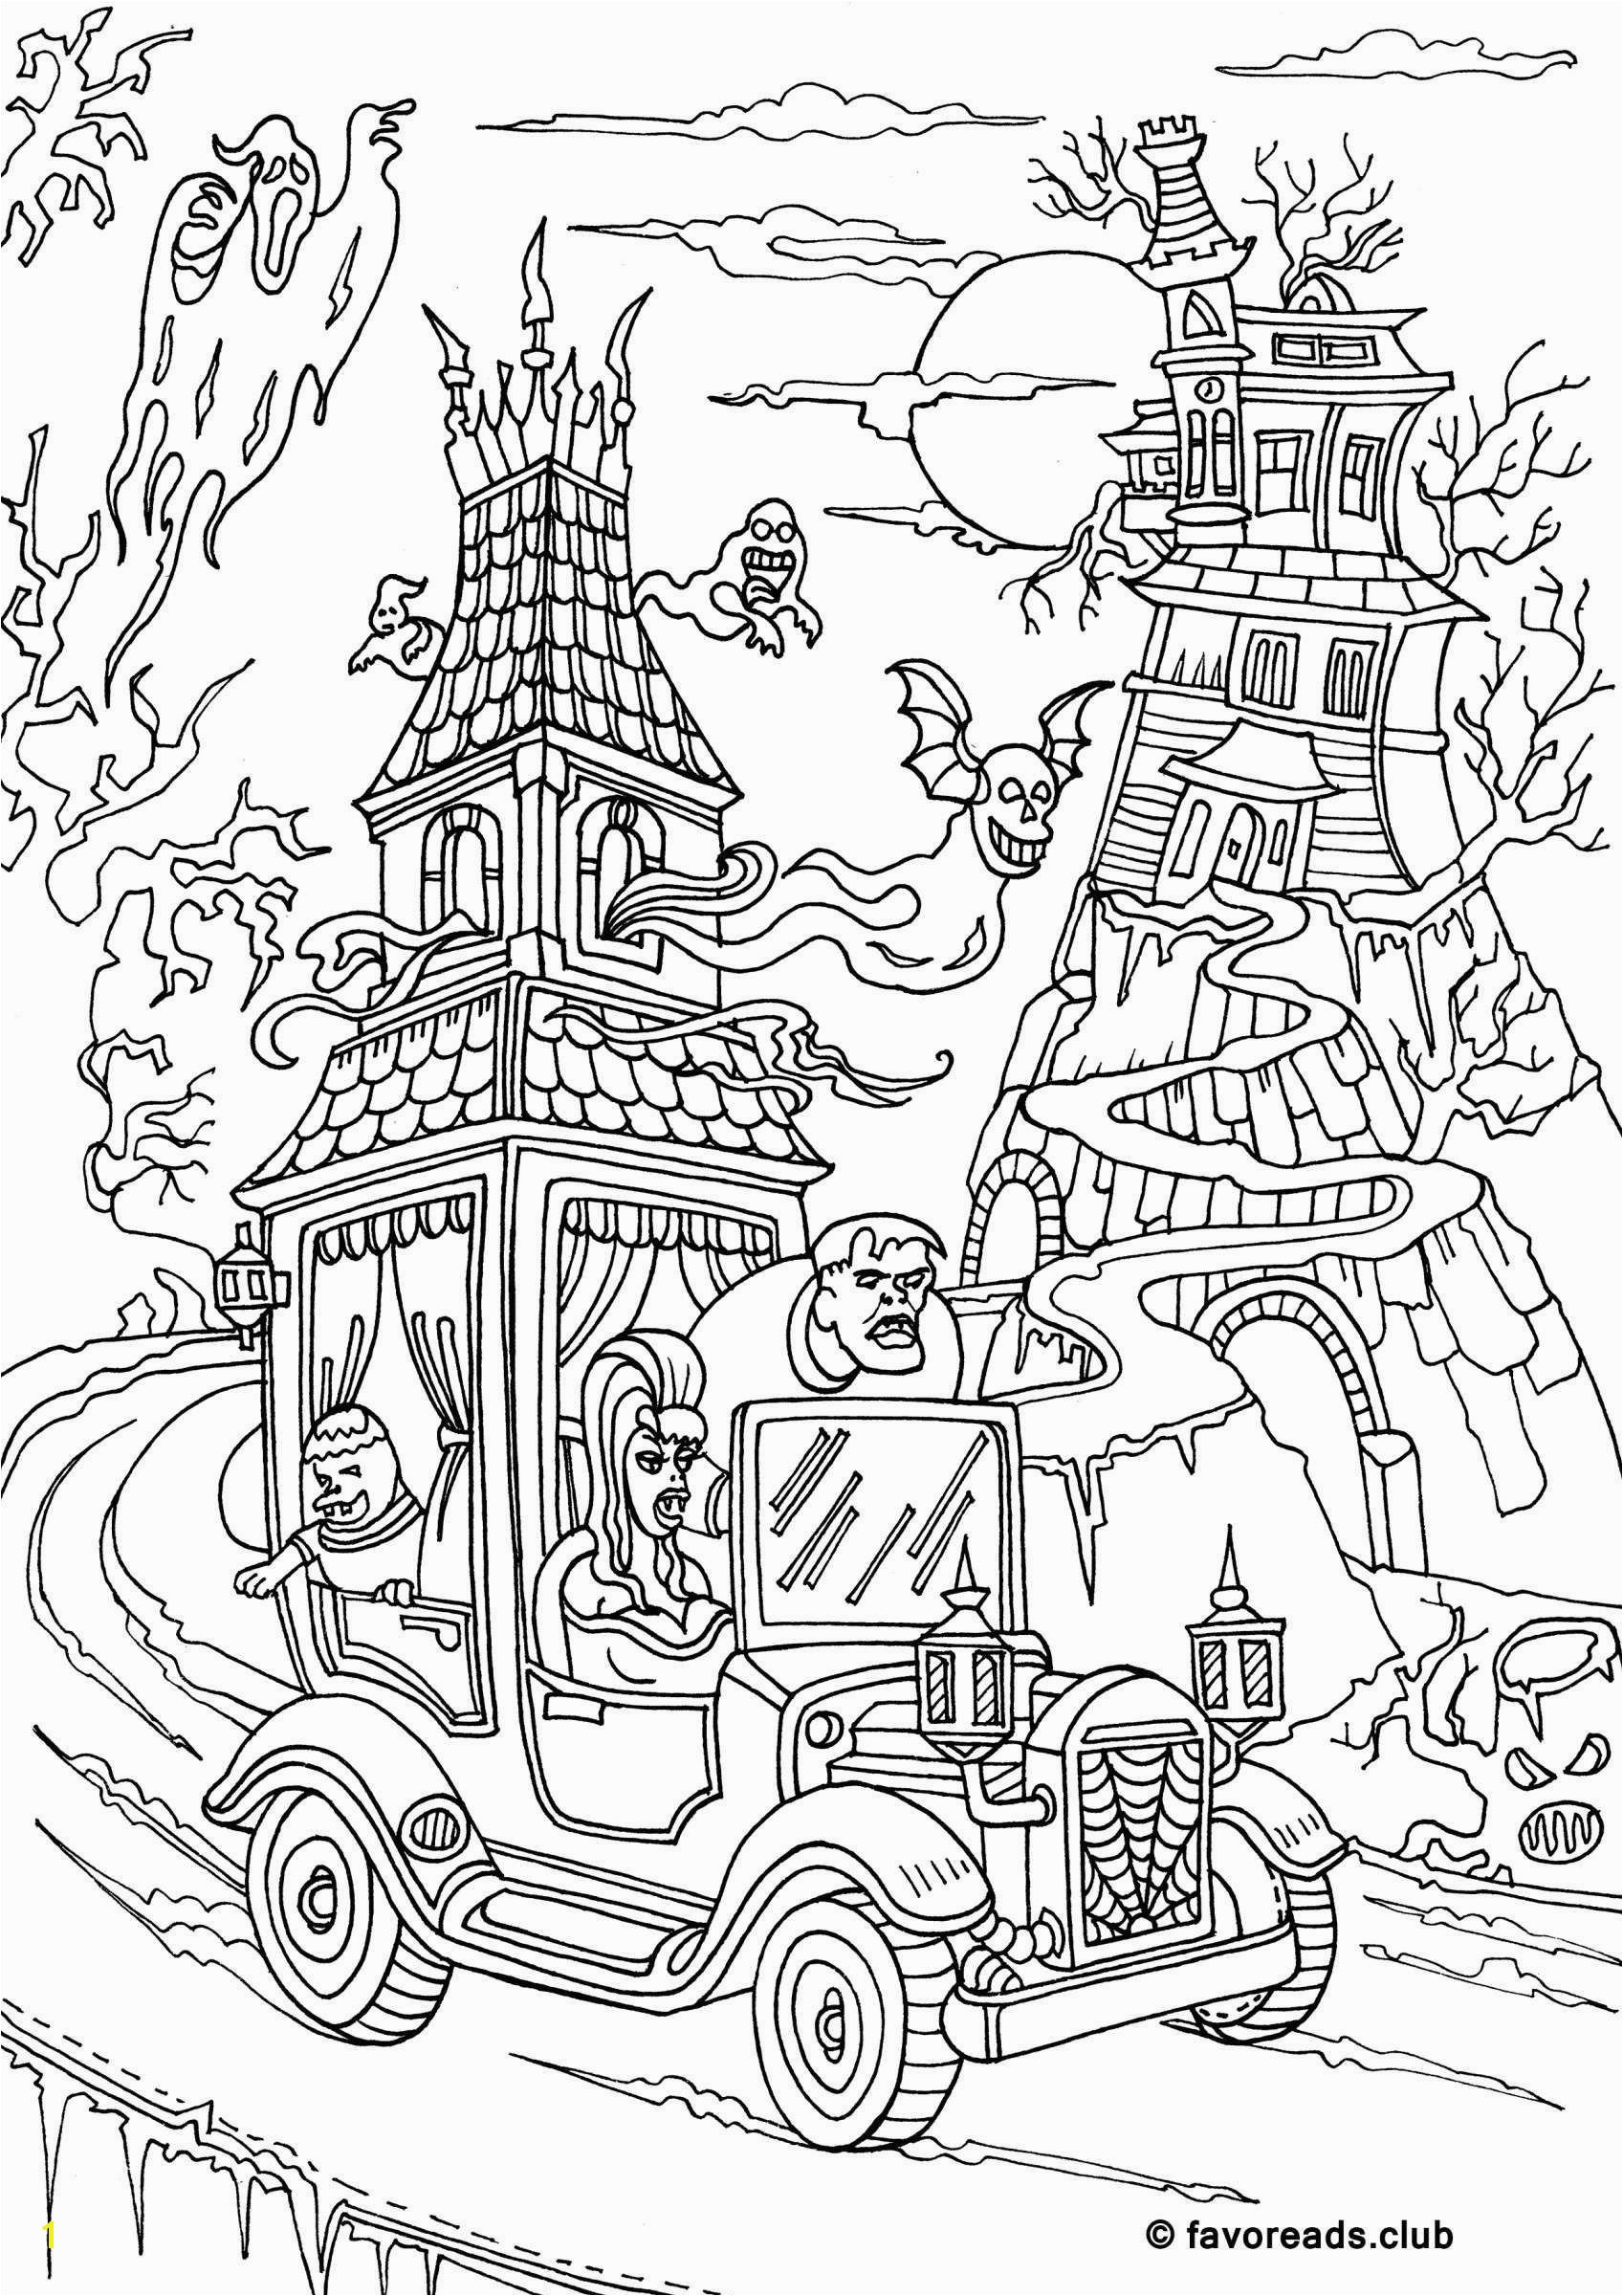 Total Drama Action Coloring Pages Halloween Vampire Coloring Pages Luxury 40 Ausmalbilder Vampire